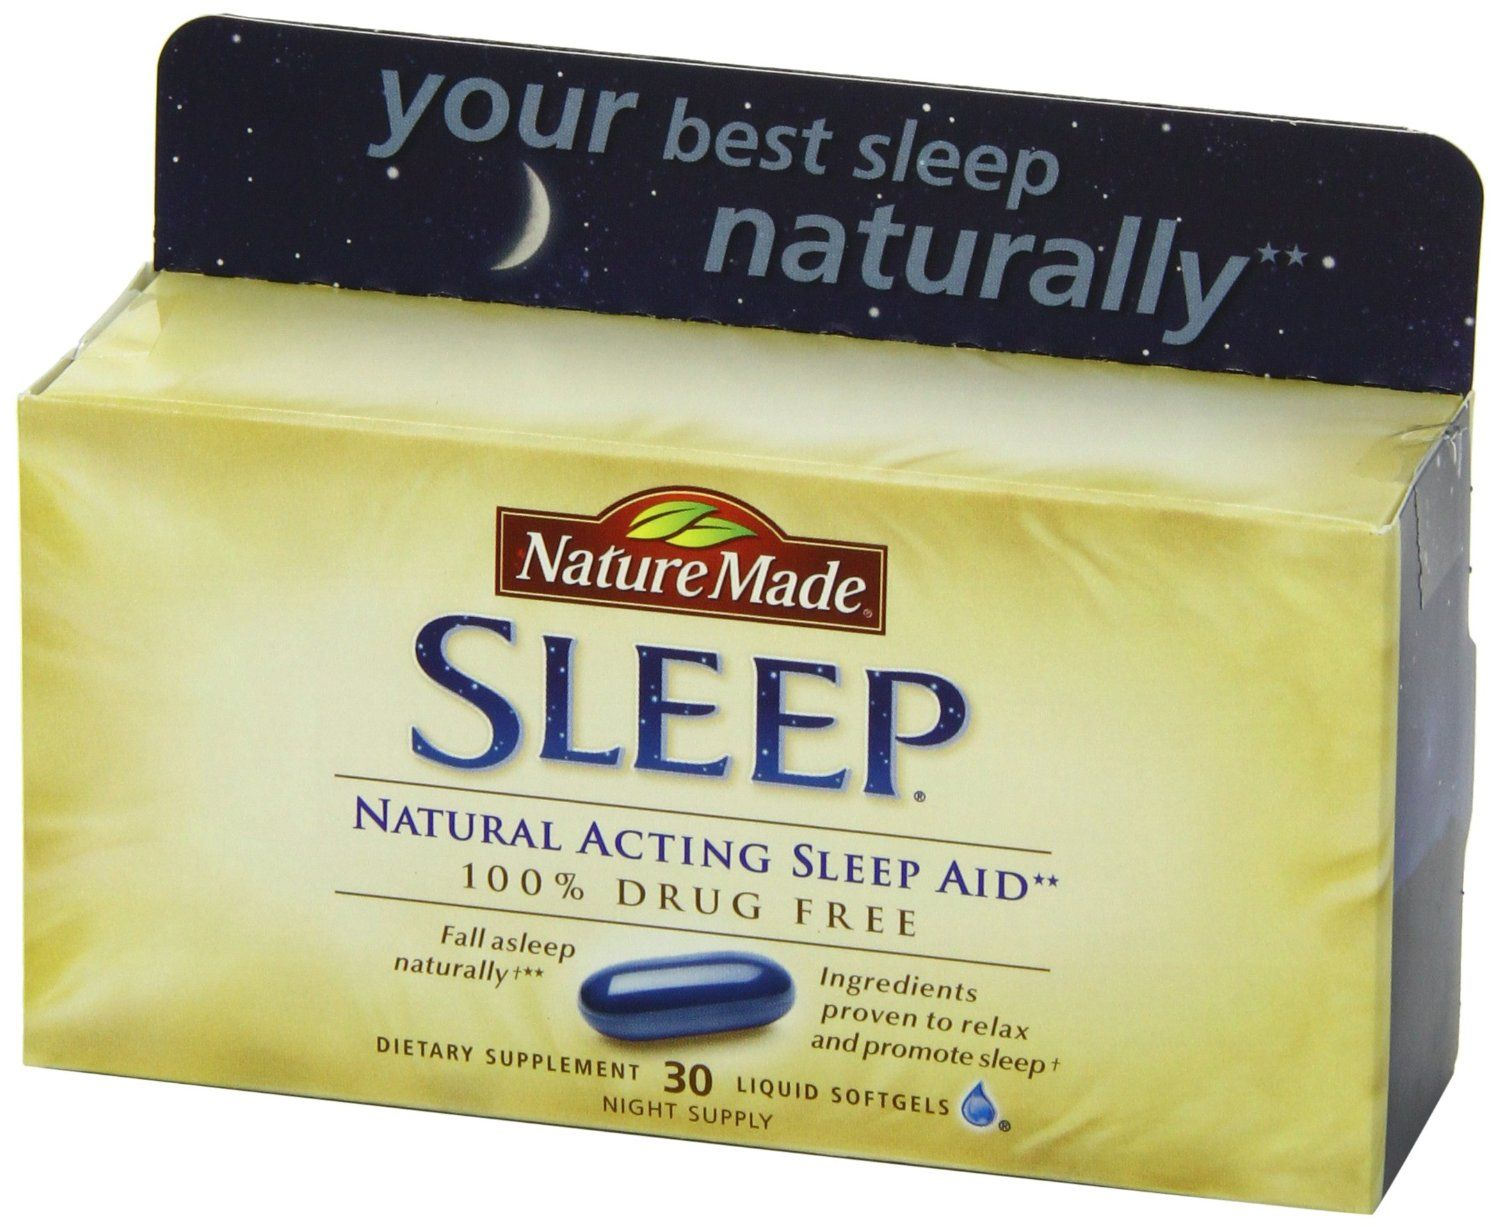 Nature Made Sleep - All Natural Sleep Aid Drug-Free (NMSA)